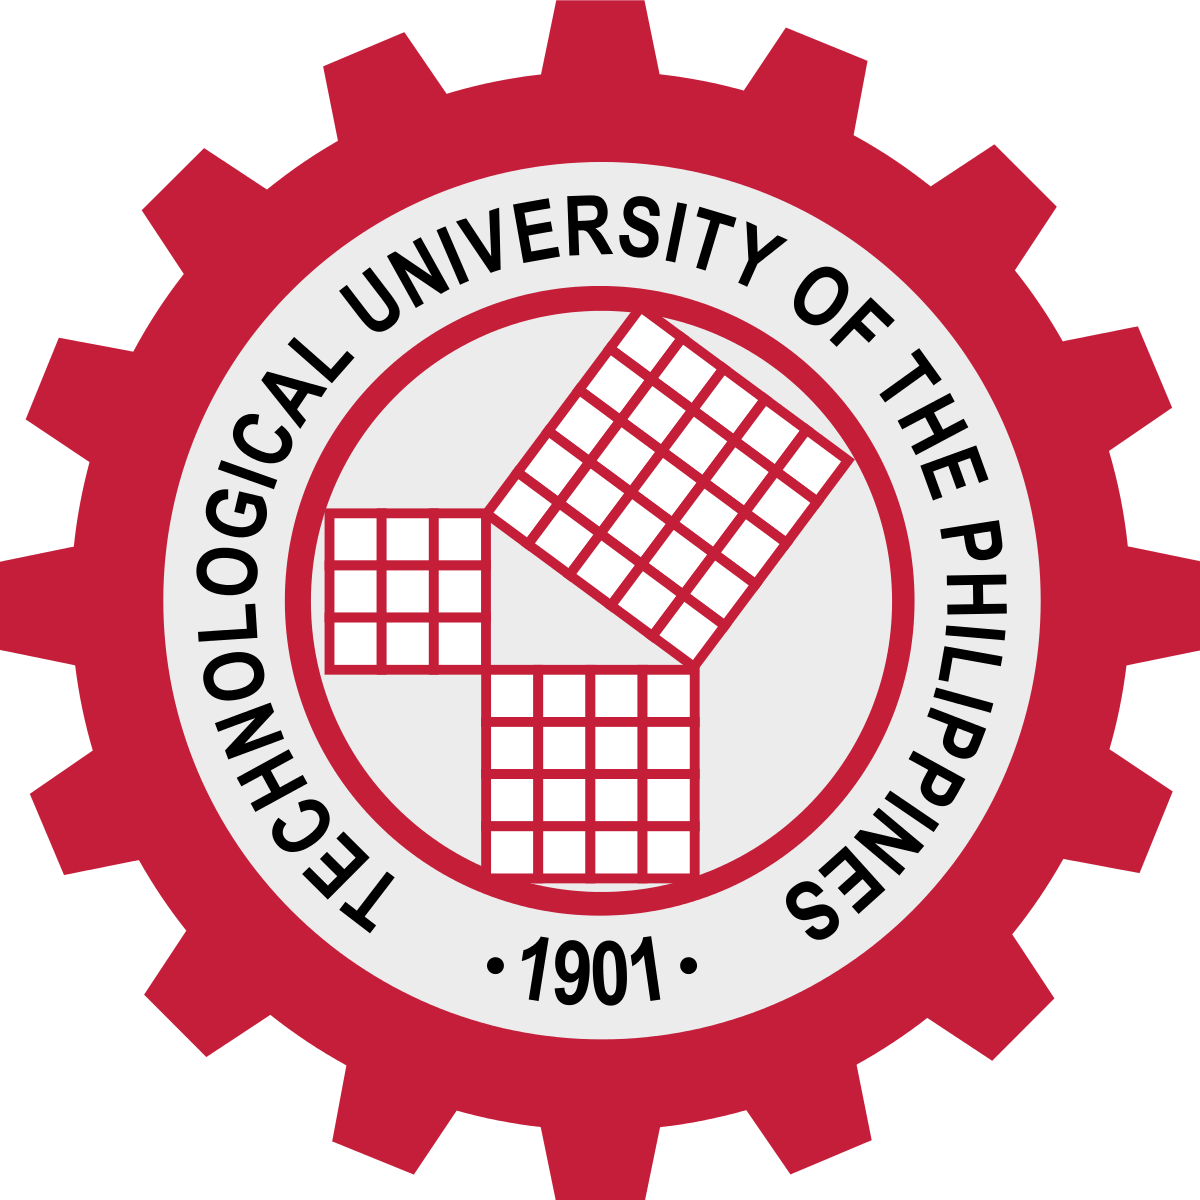 Engineering clipart tech ed. Technological university of the